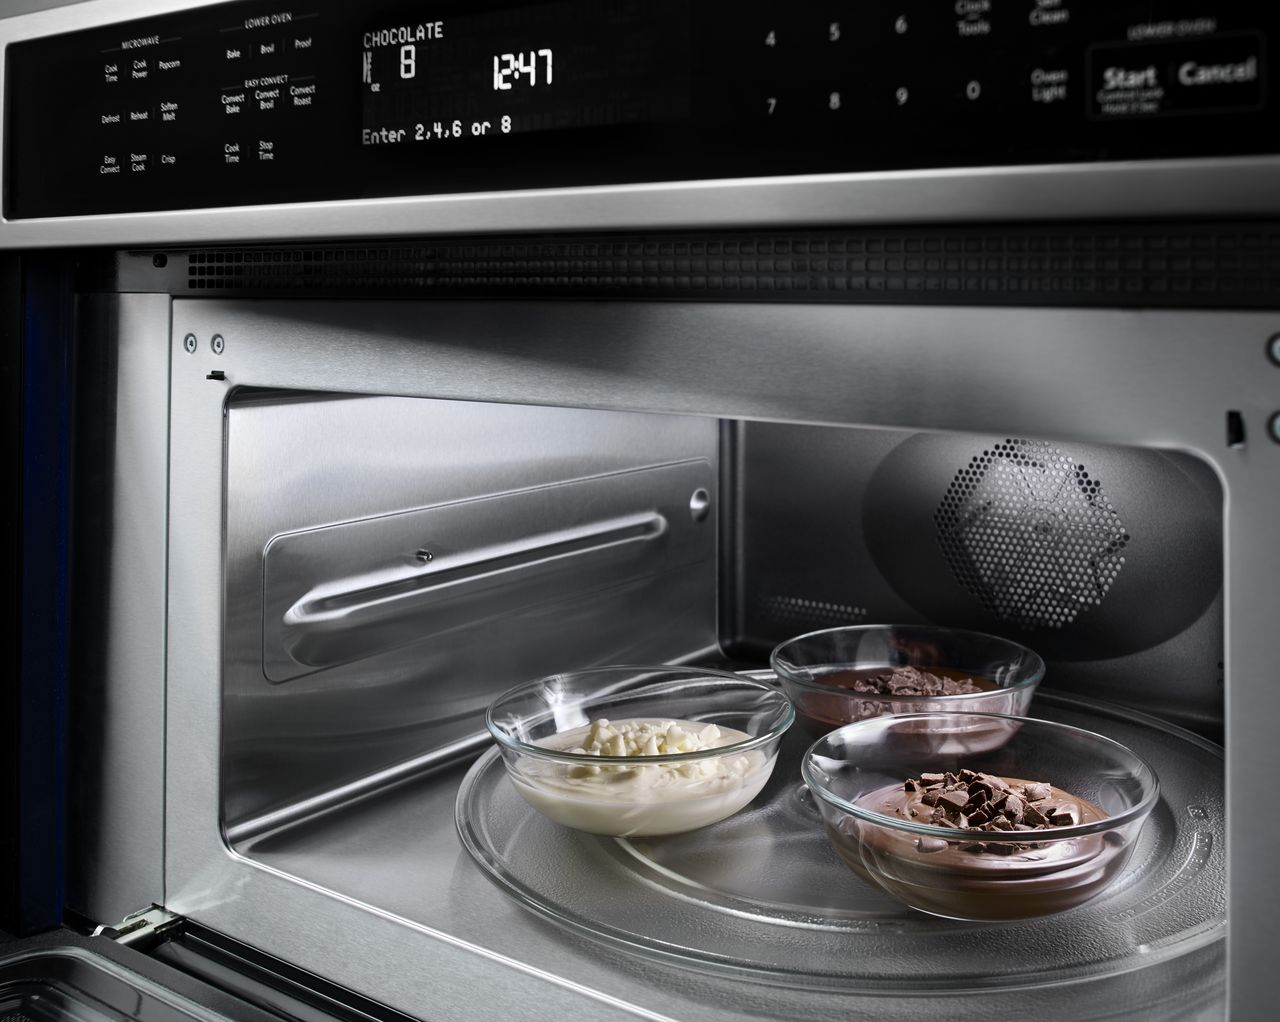 Kitchenaid 30 Electric Oven Microwave Combo Built In Koce500e Home